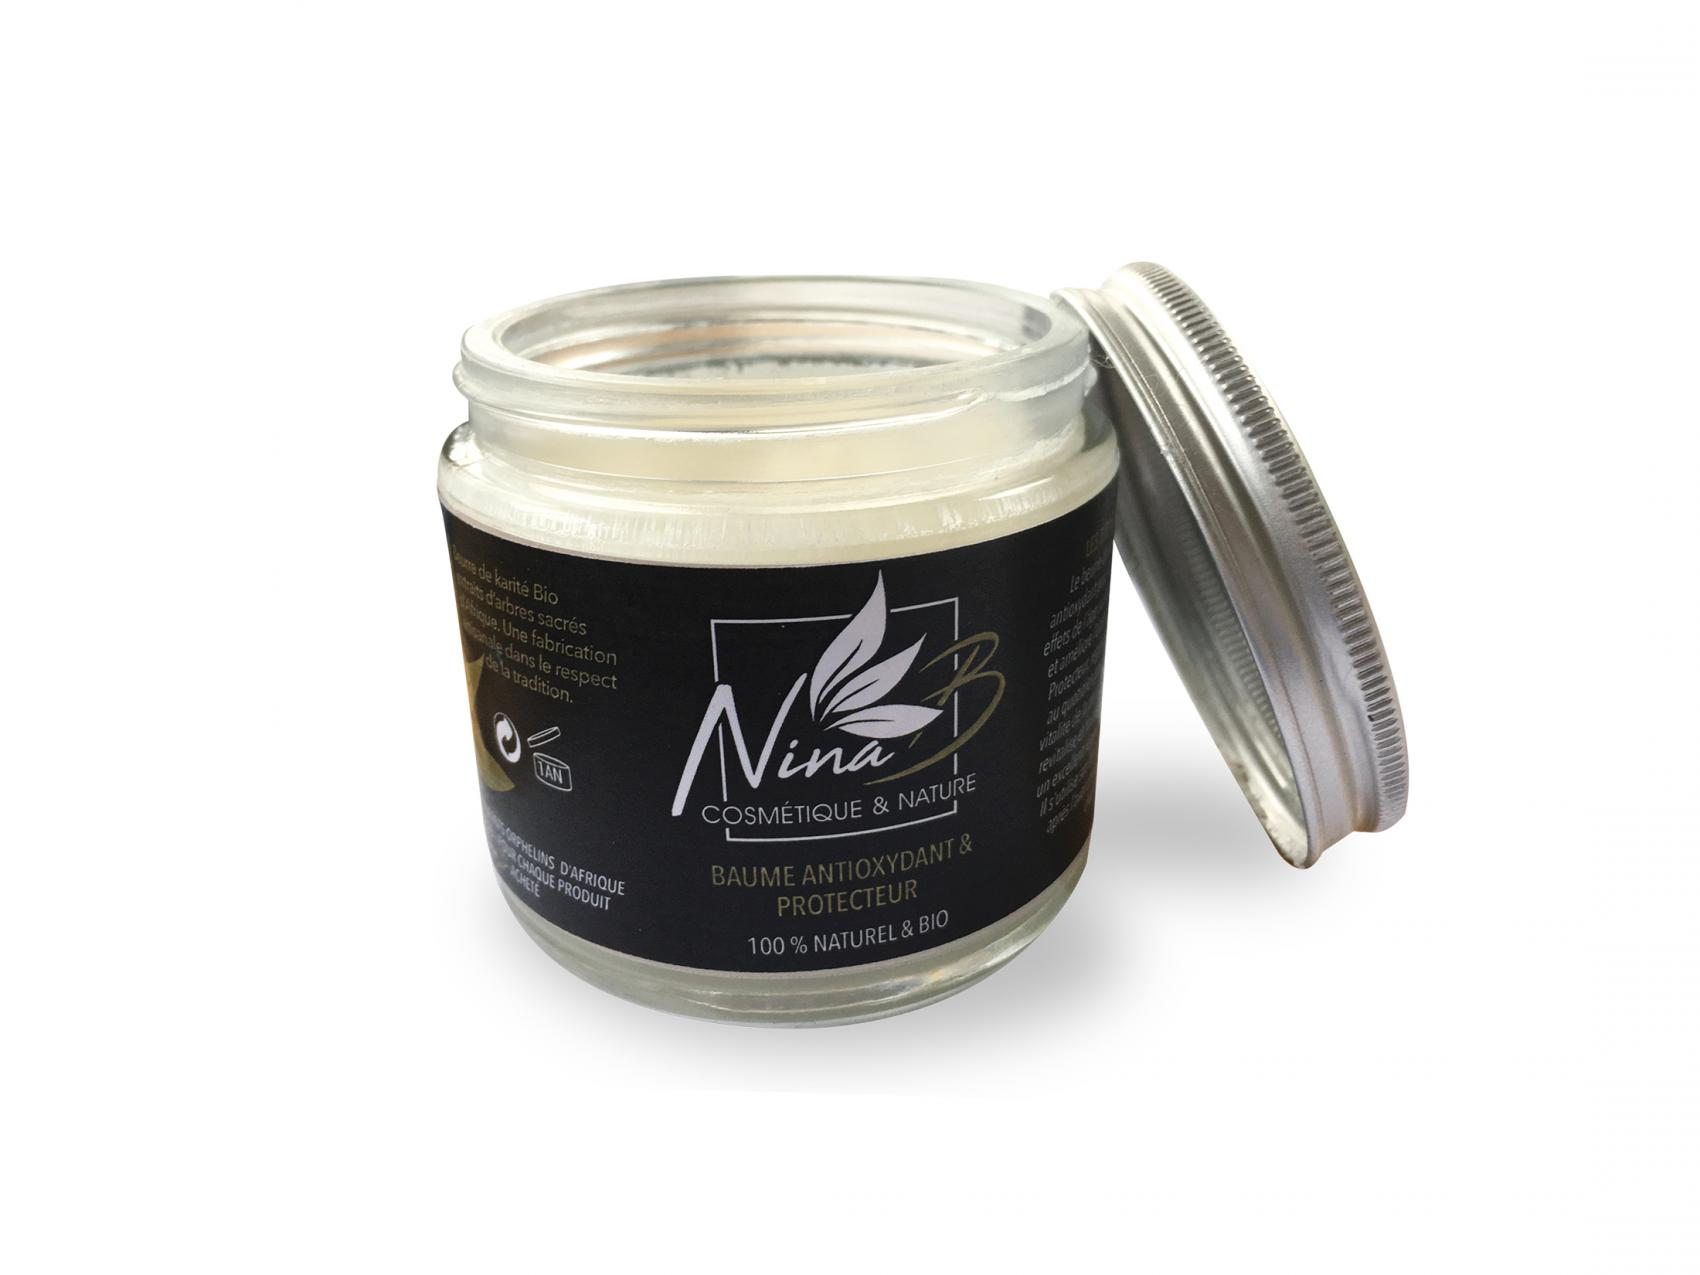 Balms, oils, creams... Nina B Cosmetics for body, face and hair